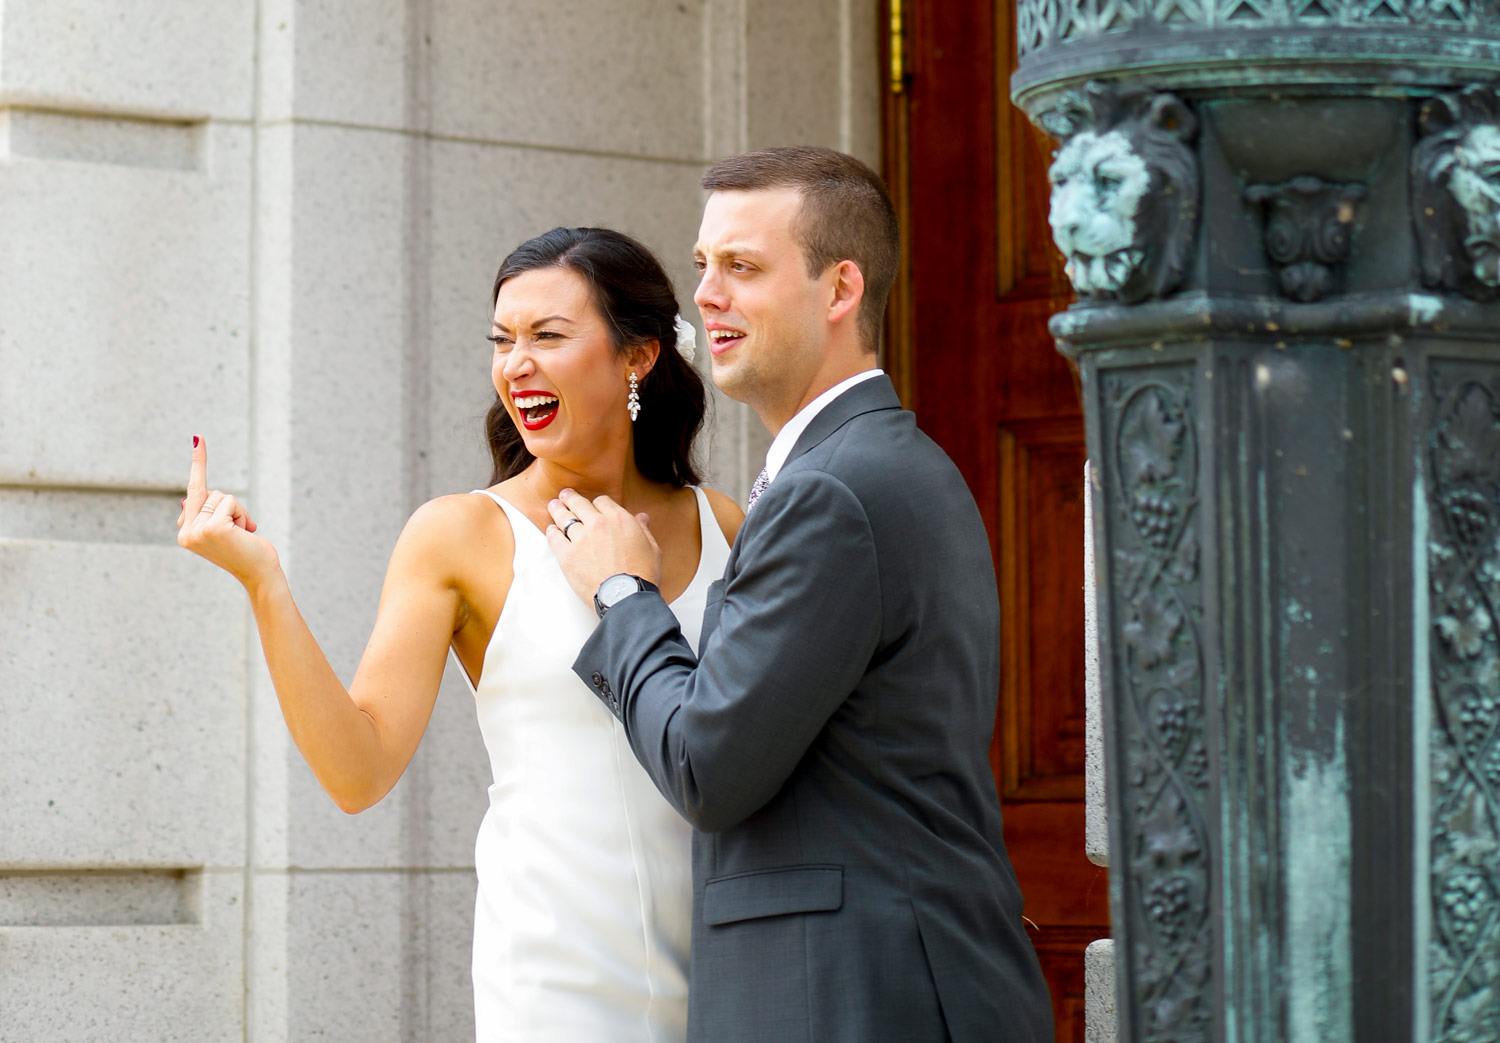 wisconsin-state-capitol-building-wedding-photos-ruthie-hauge-photography.jpg